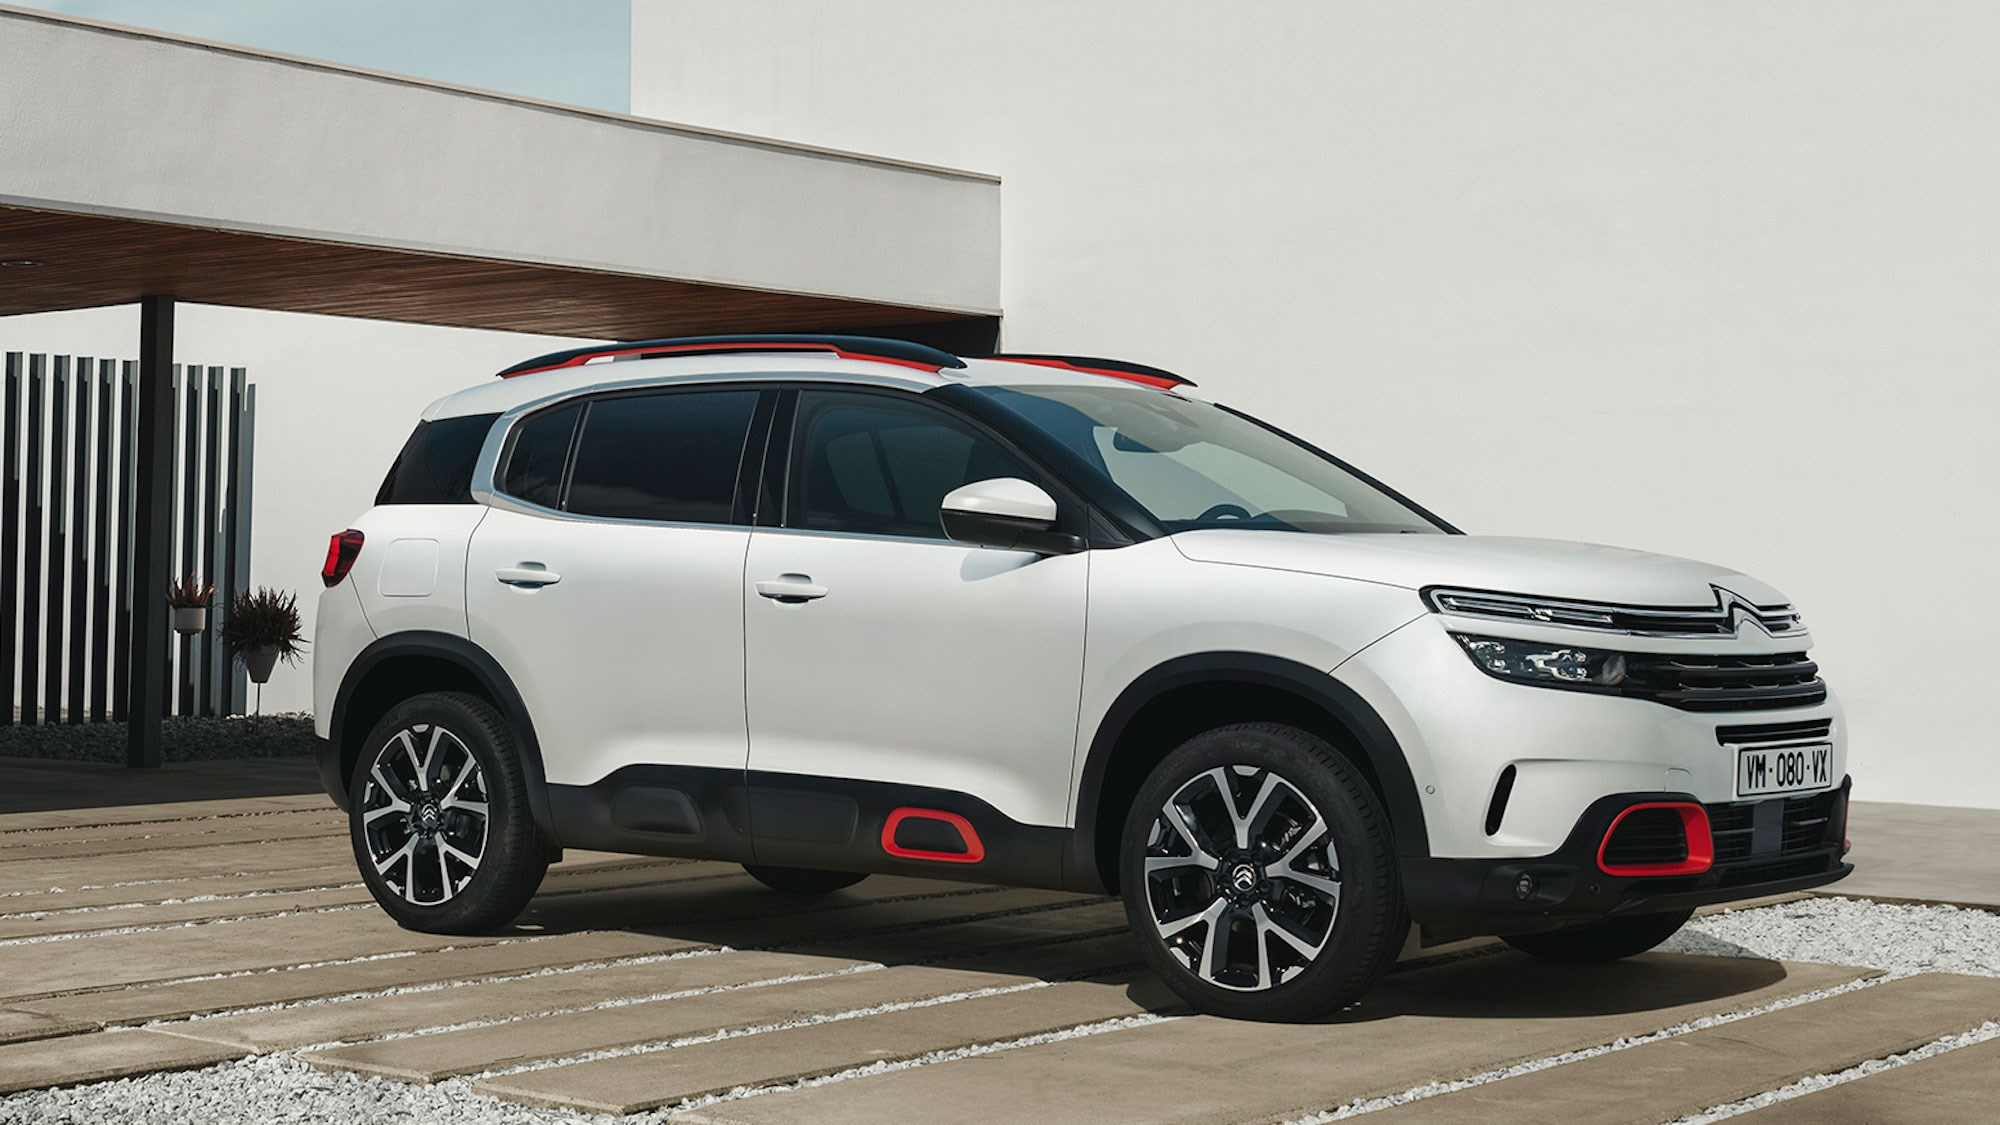 citroen c5 aircross suv 2019 review bringing new comfort to the masses car magazine. Black Bedroom Furniture Sets. Home Design Ideas